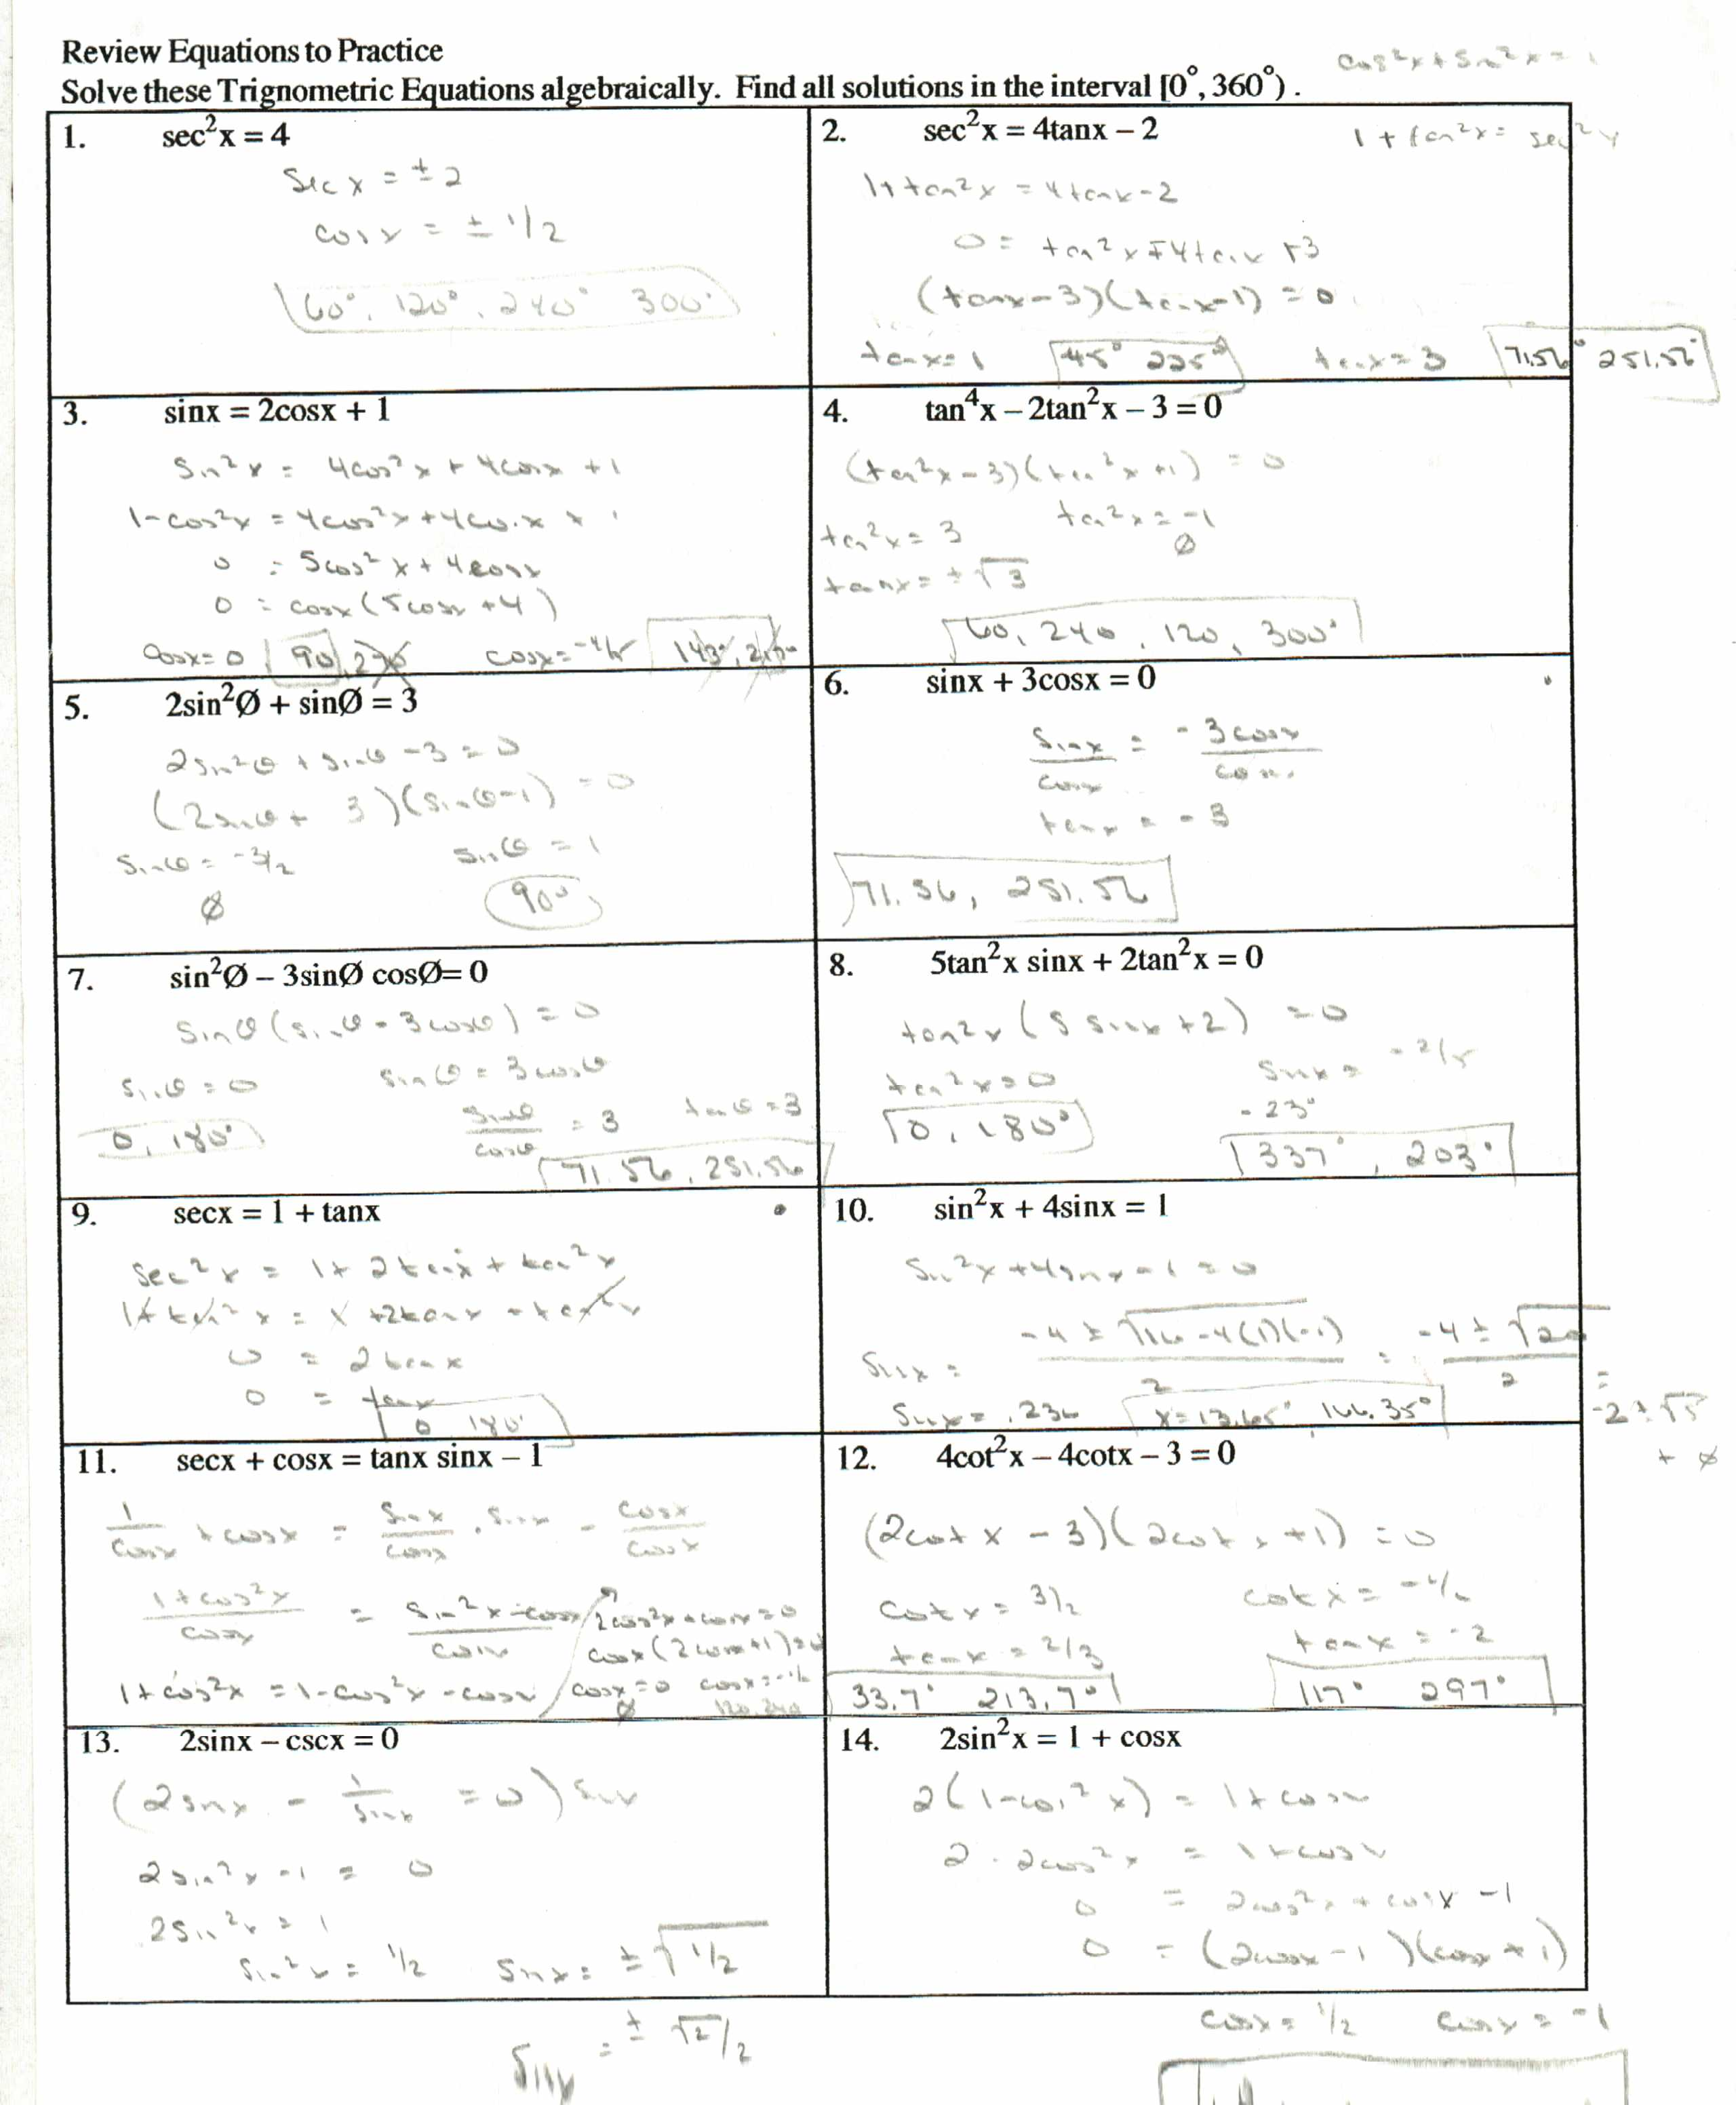 Printables Trig Identities Worksheet trig identities worksheet 02 answers abtd 3 4 galleryhip com the hippest 2560 x 3104 download worksheet